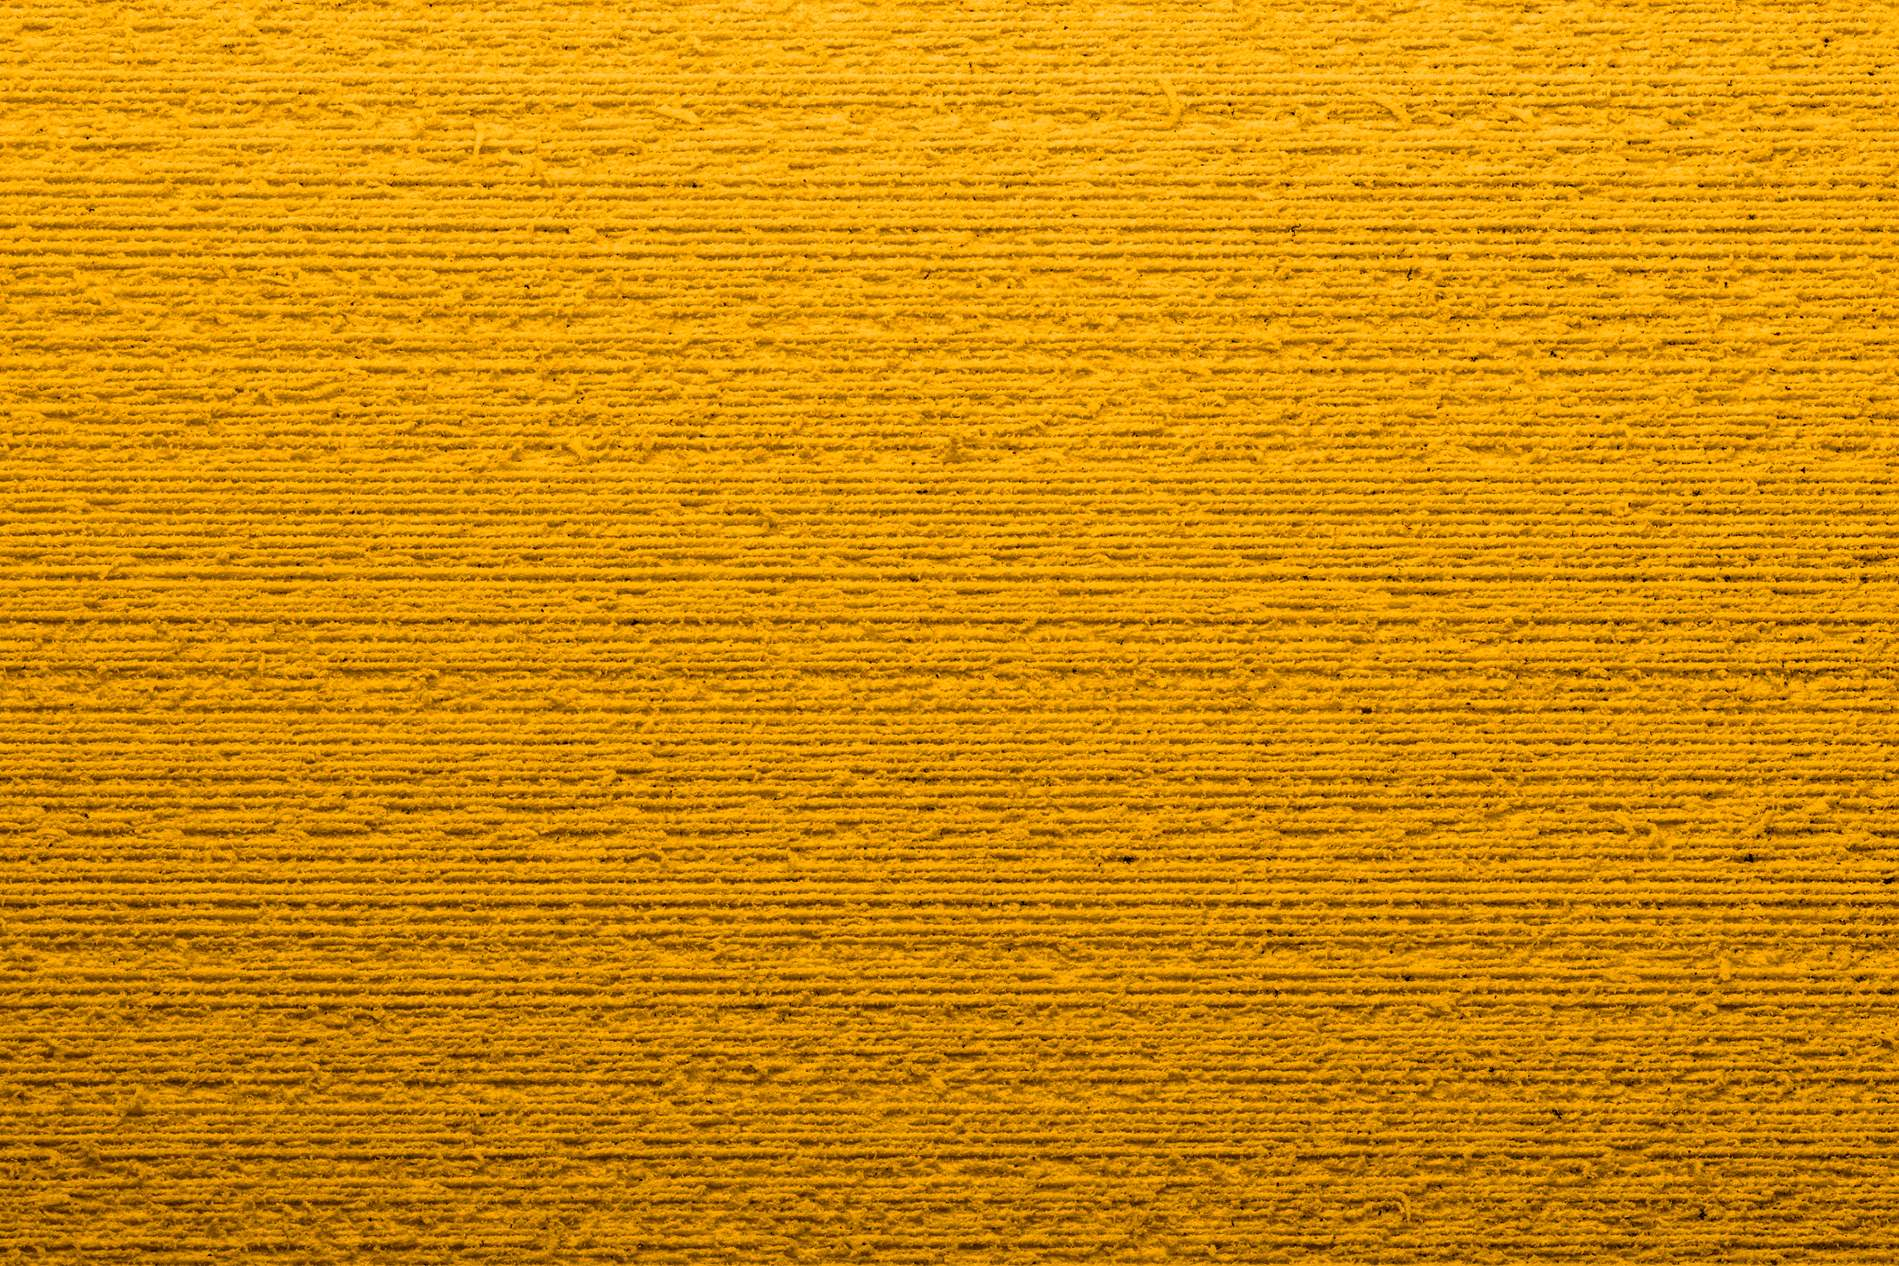 Line Texture Background : Yellow horizontal lines texture background photohdx